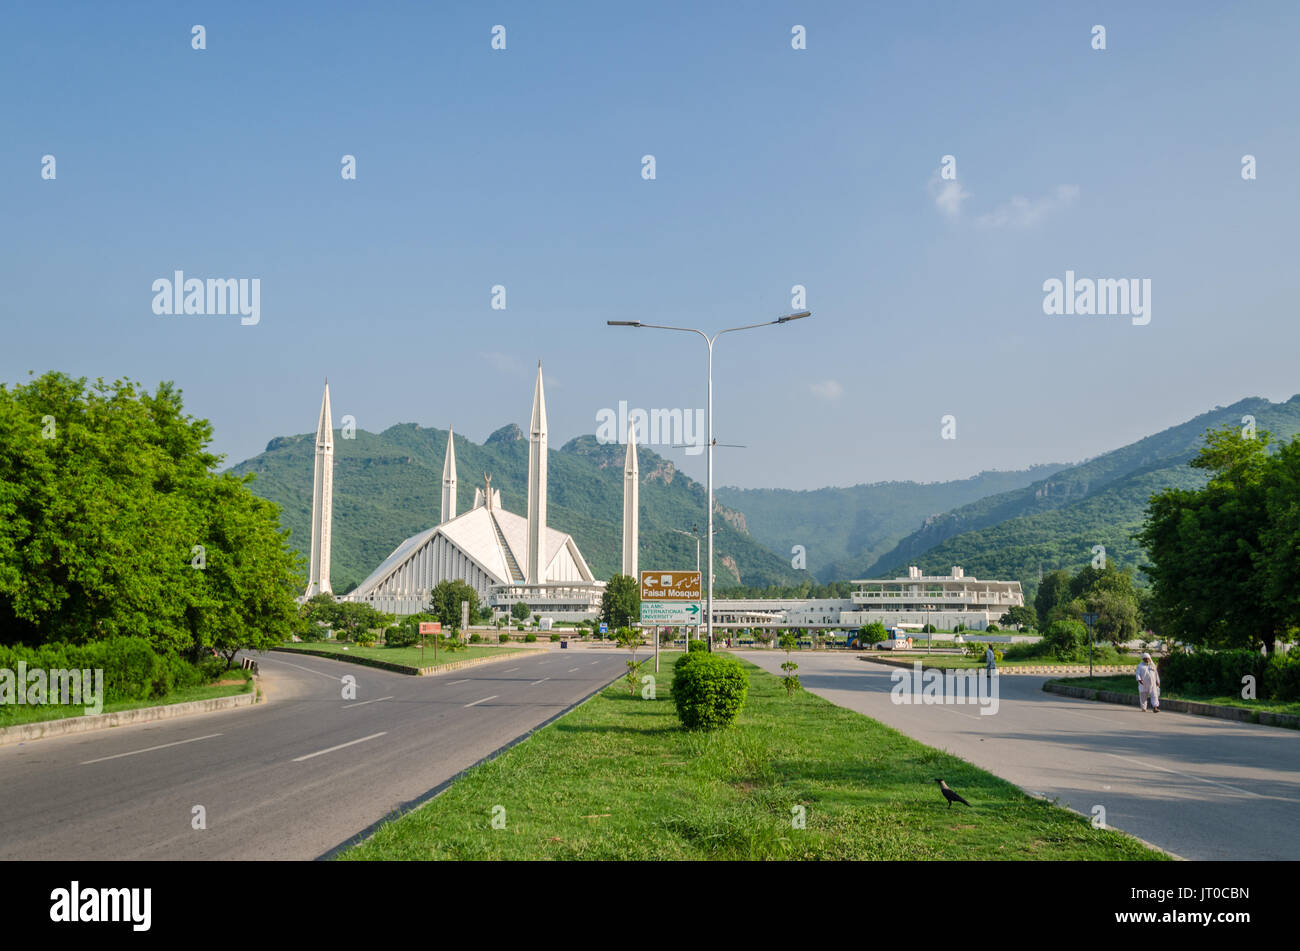 Mosque And Hills Stock Photos & Mosque And Hills Stock